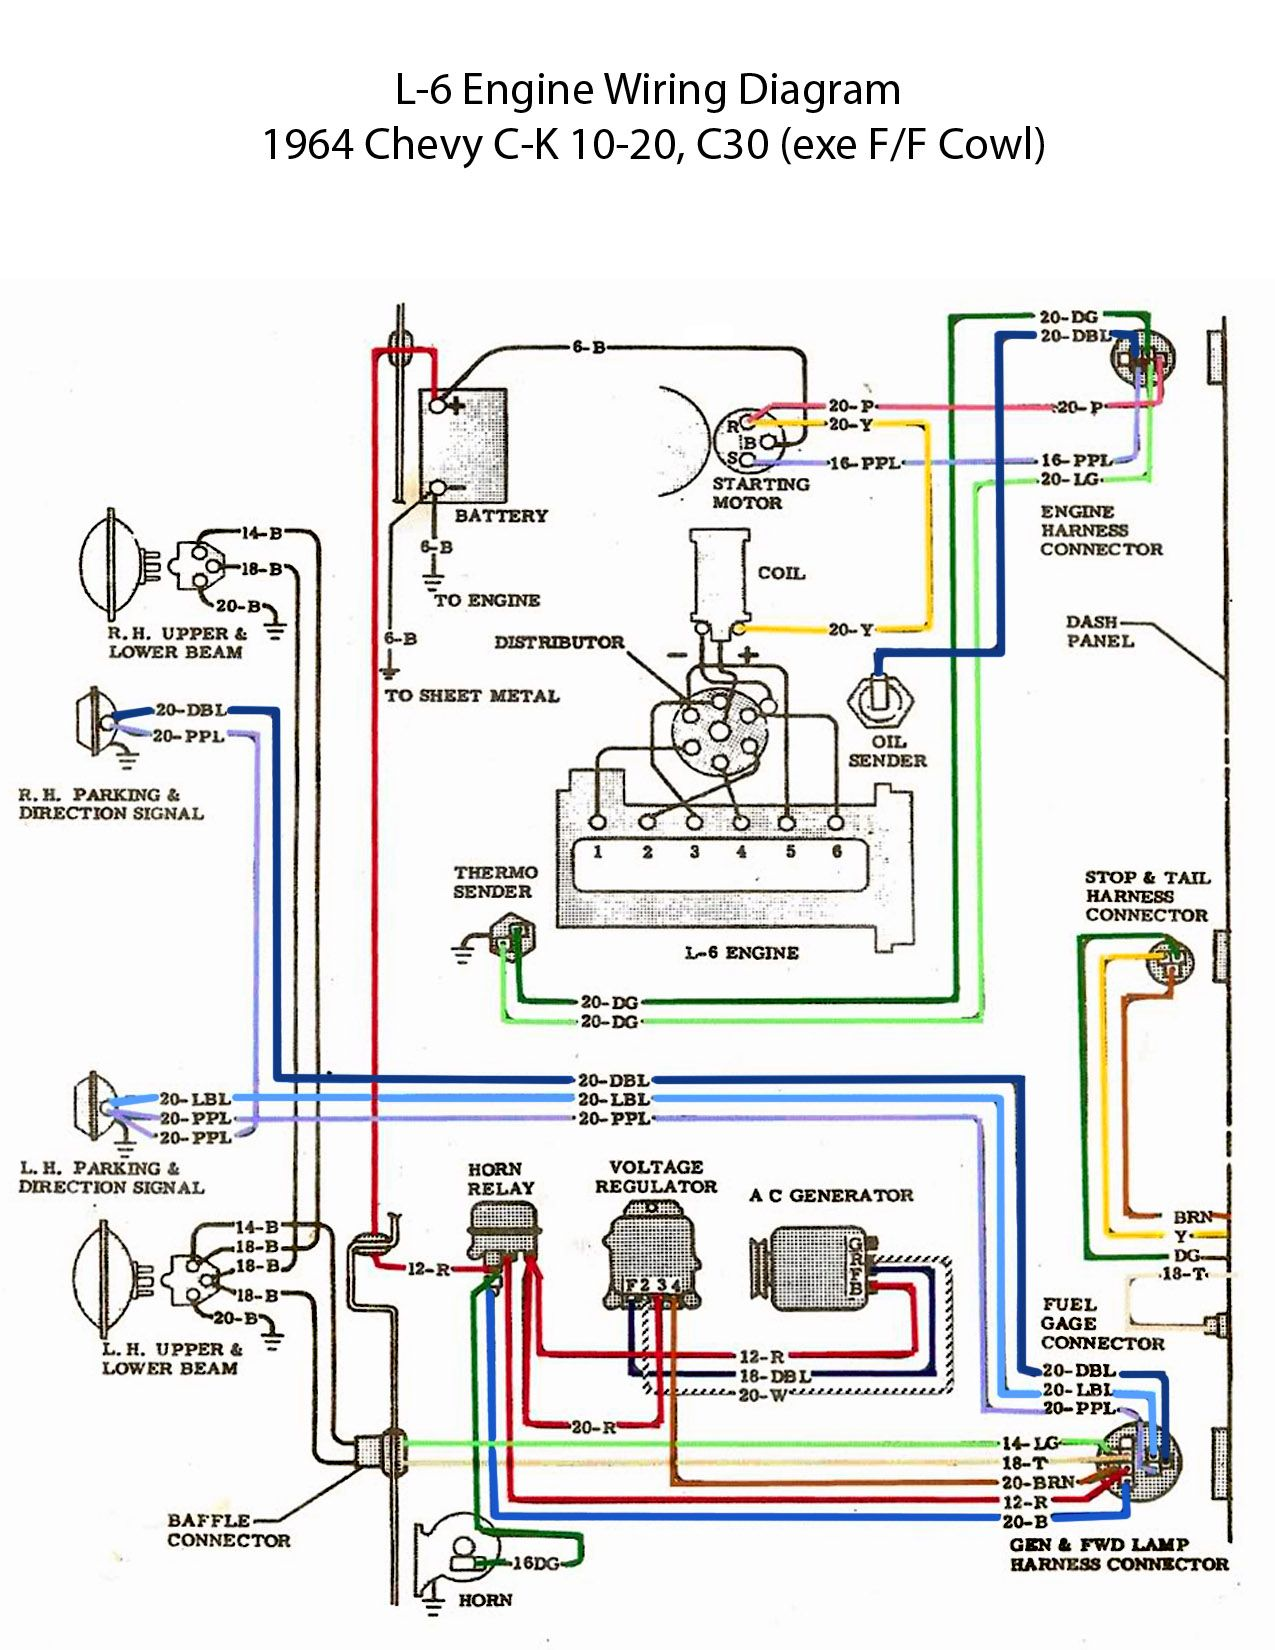 ELECTRIC: L-6 Engine Wiring Diagram | \'60s Chevy C10 - Wiring ...